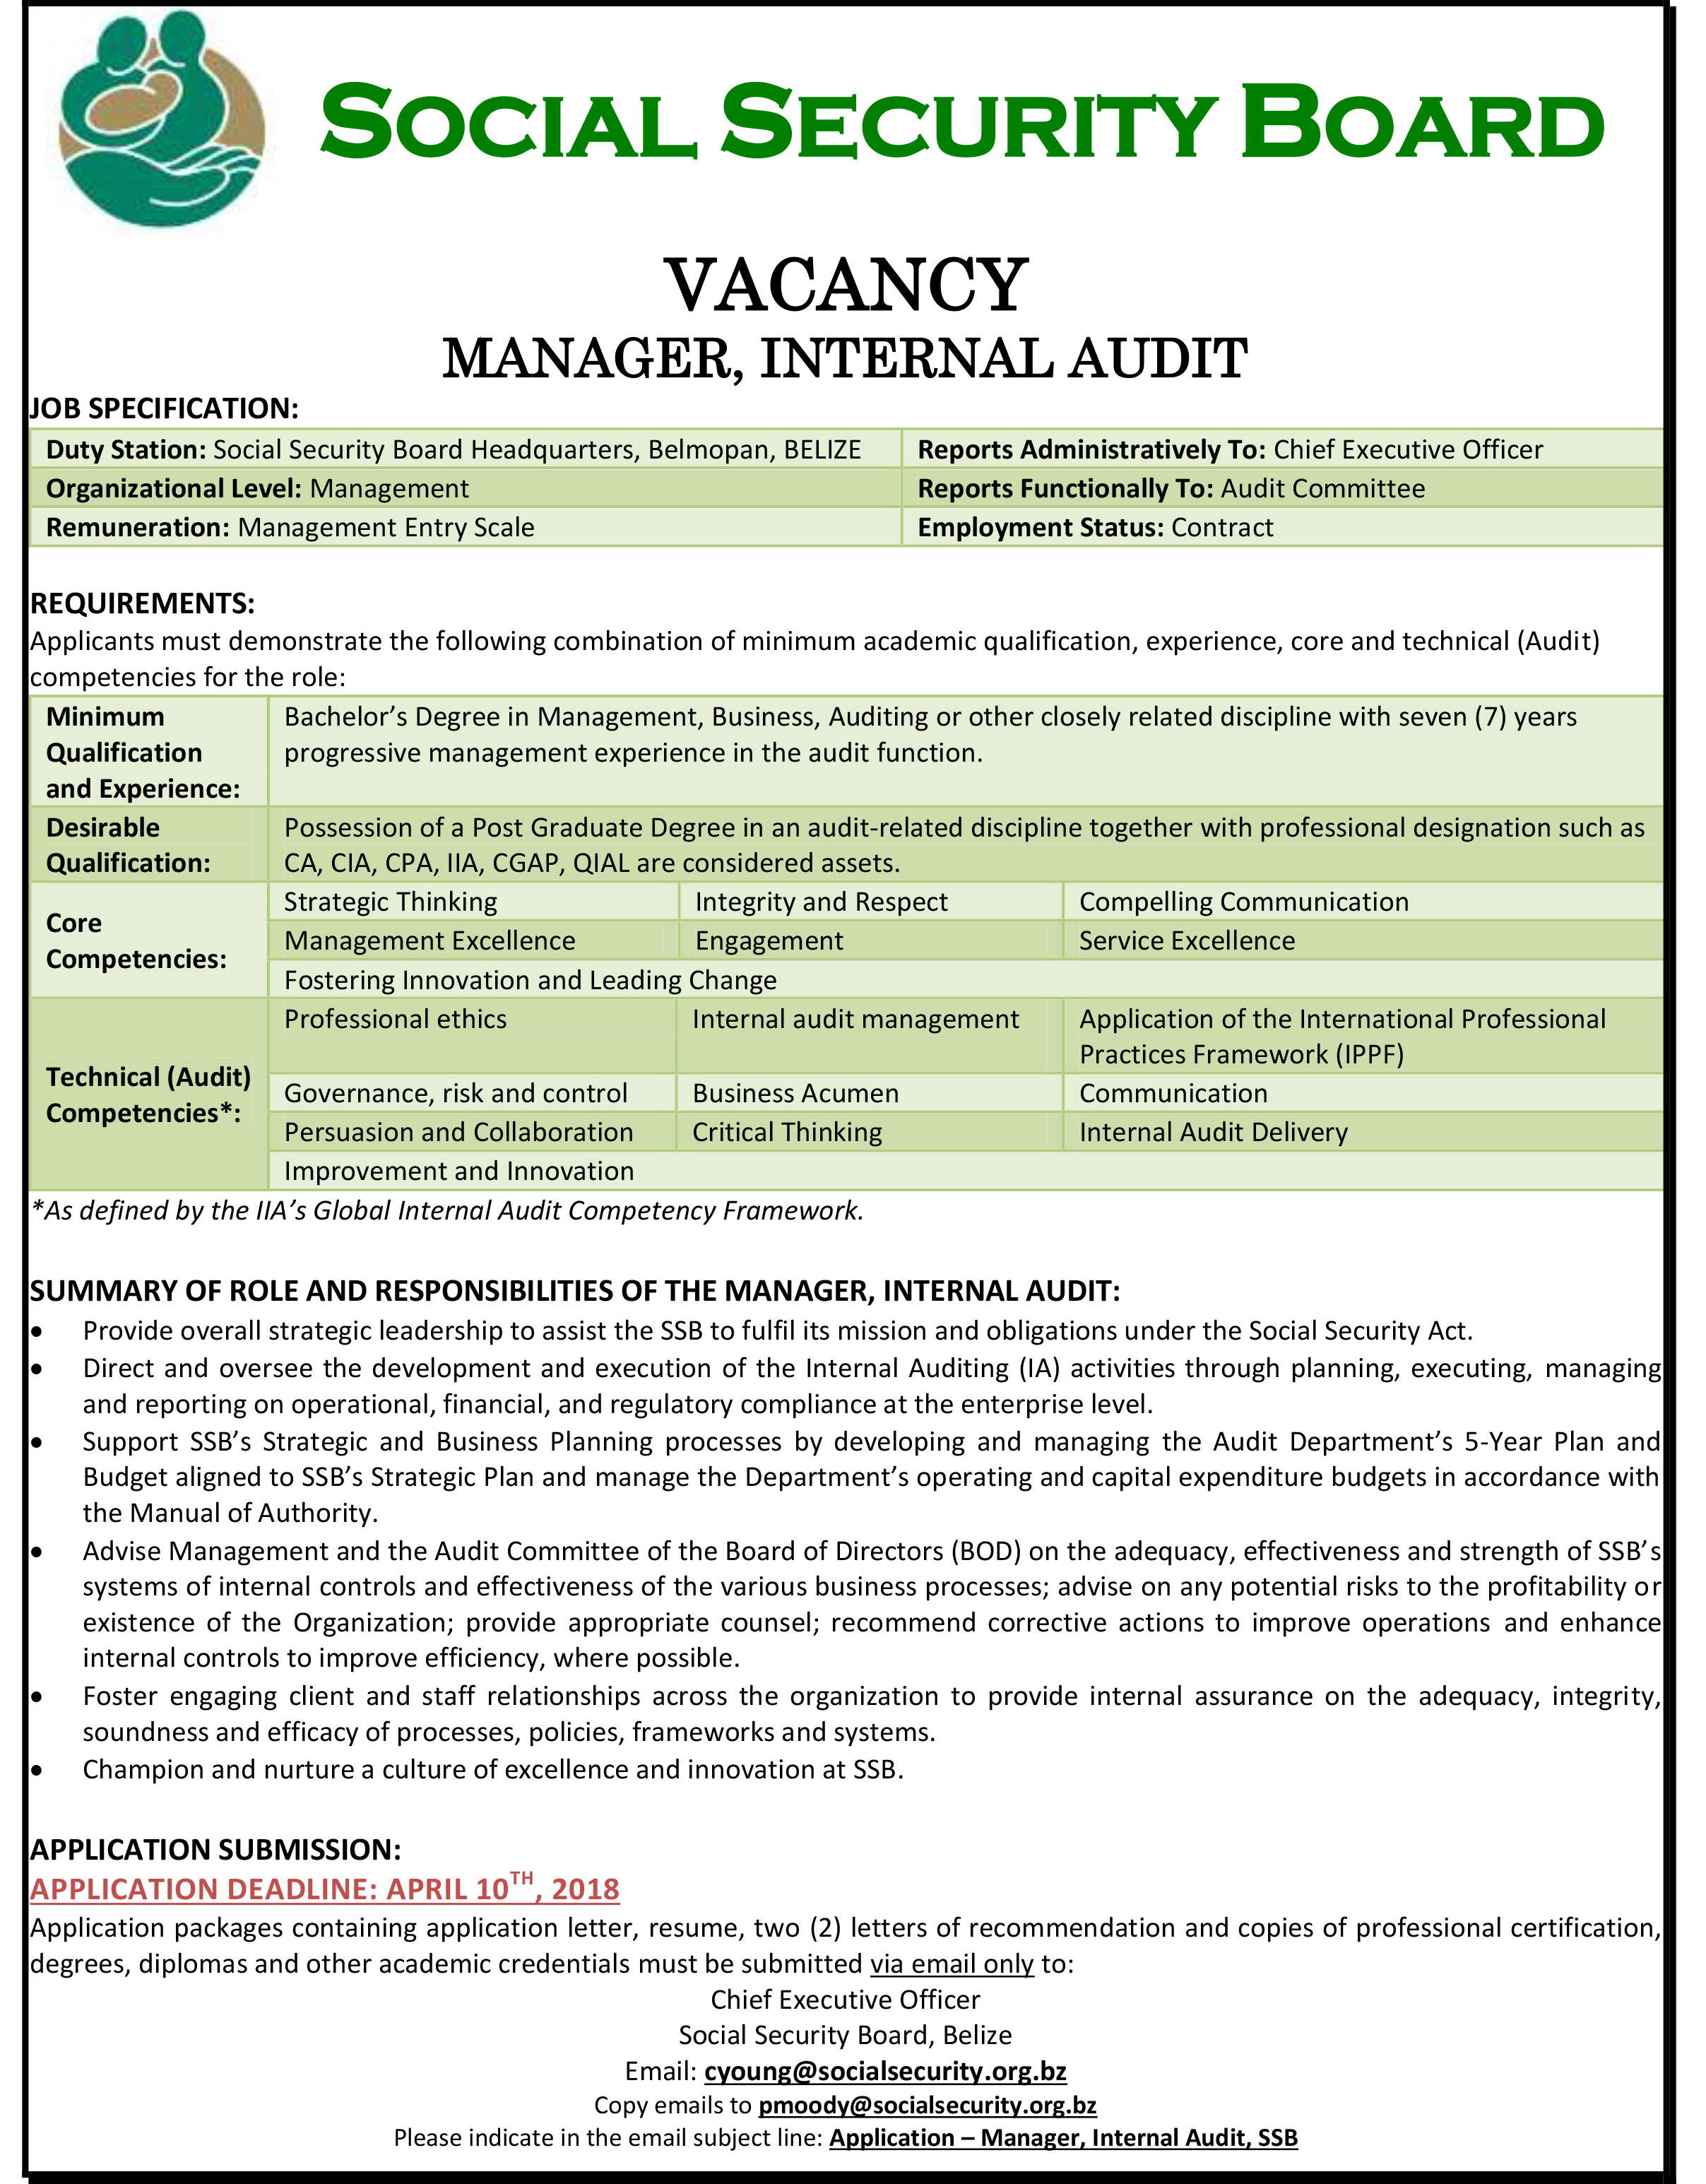 Vacancy announcements